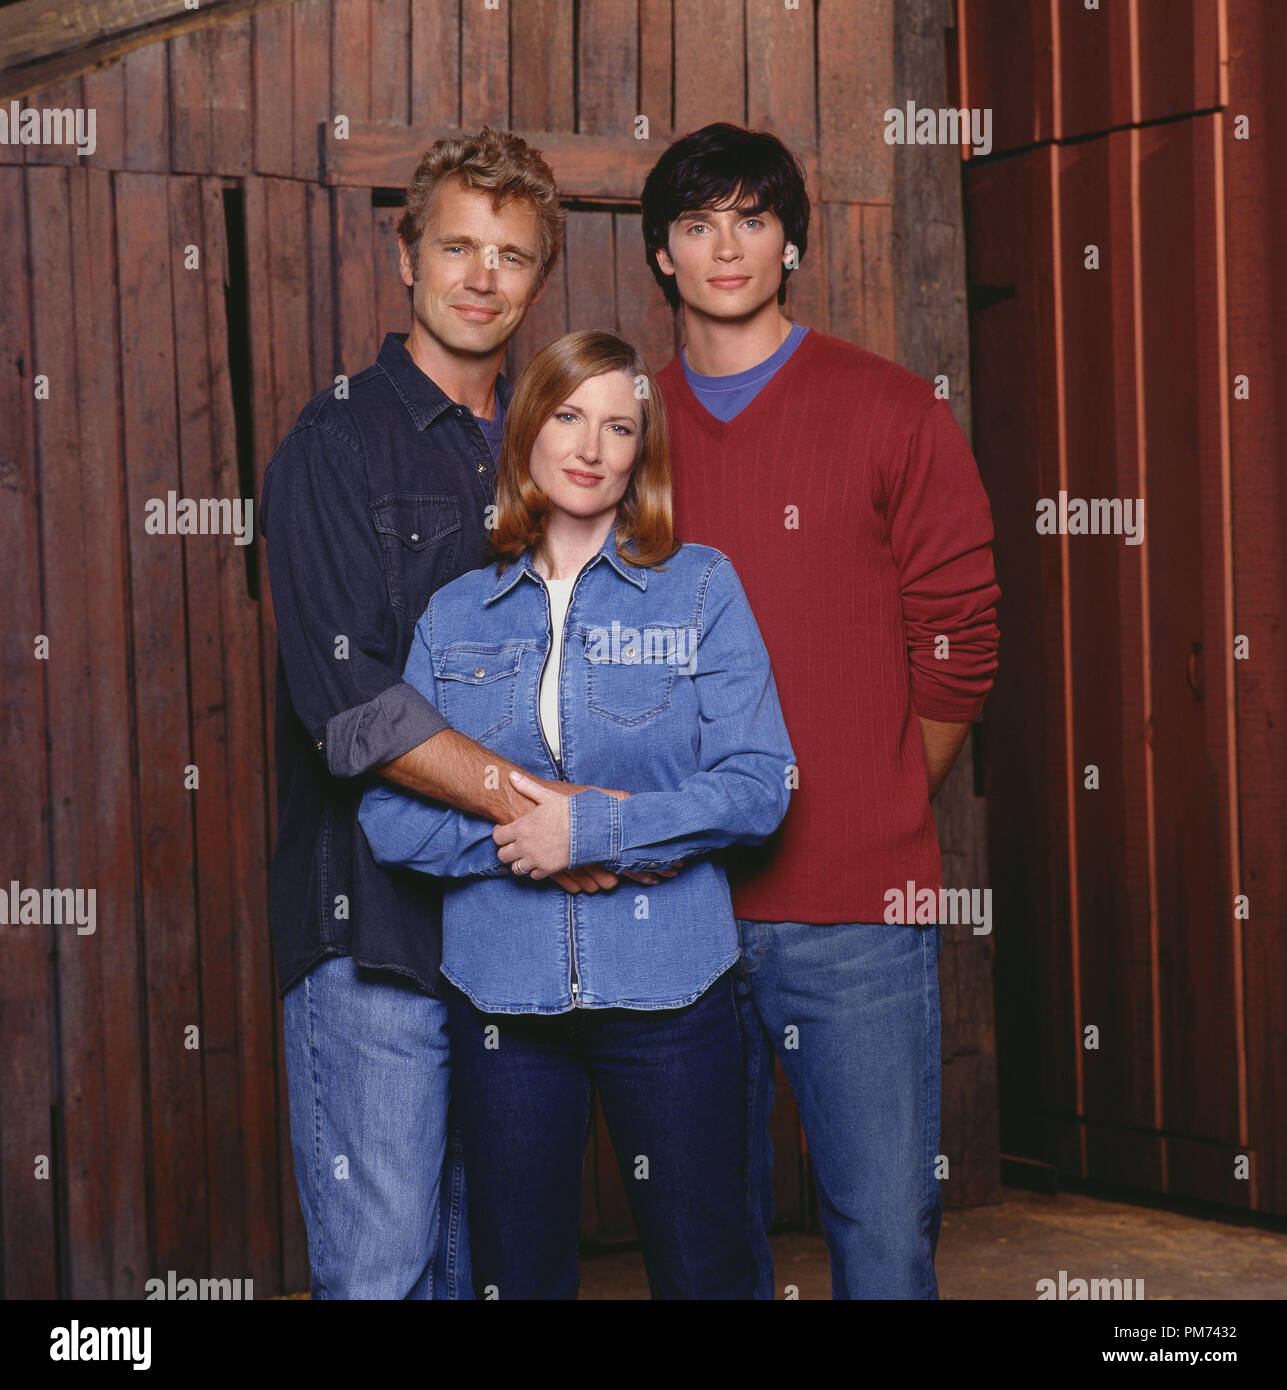 """Film Still / Publicity Still from """"Smallville""""  John Schneider, Annette O'Toole, Tom Welling 2001 Photo credit: Kharen Hill   File Reference # 30847360THA  For Editorial Use Only -  All Rights Reserved Stock Photo"""